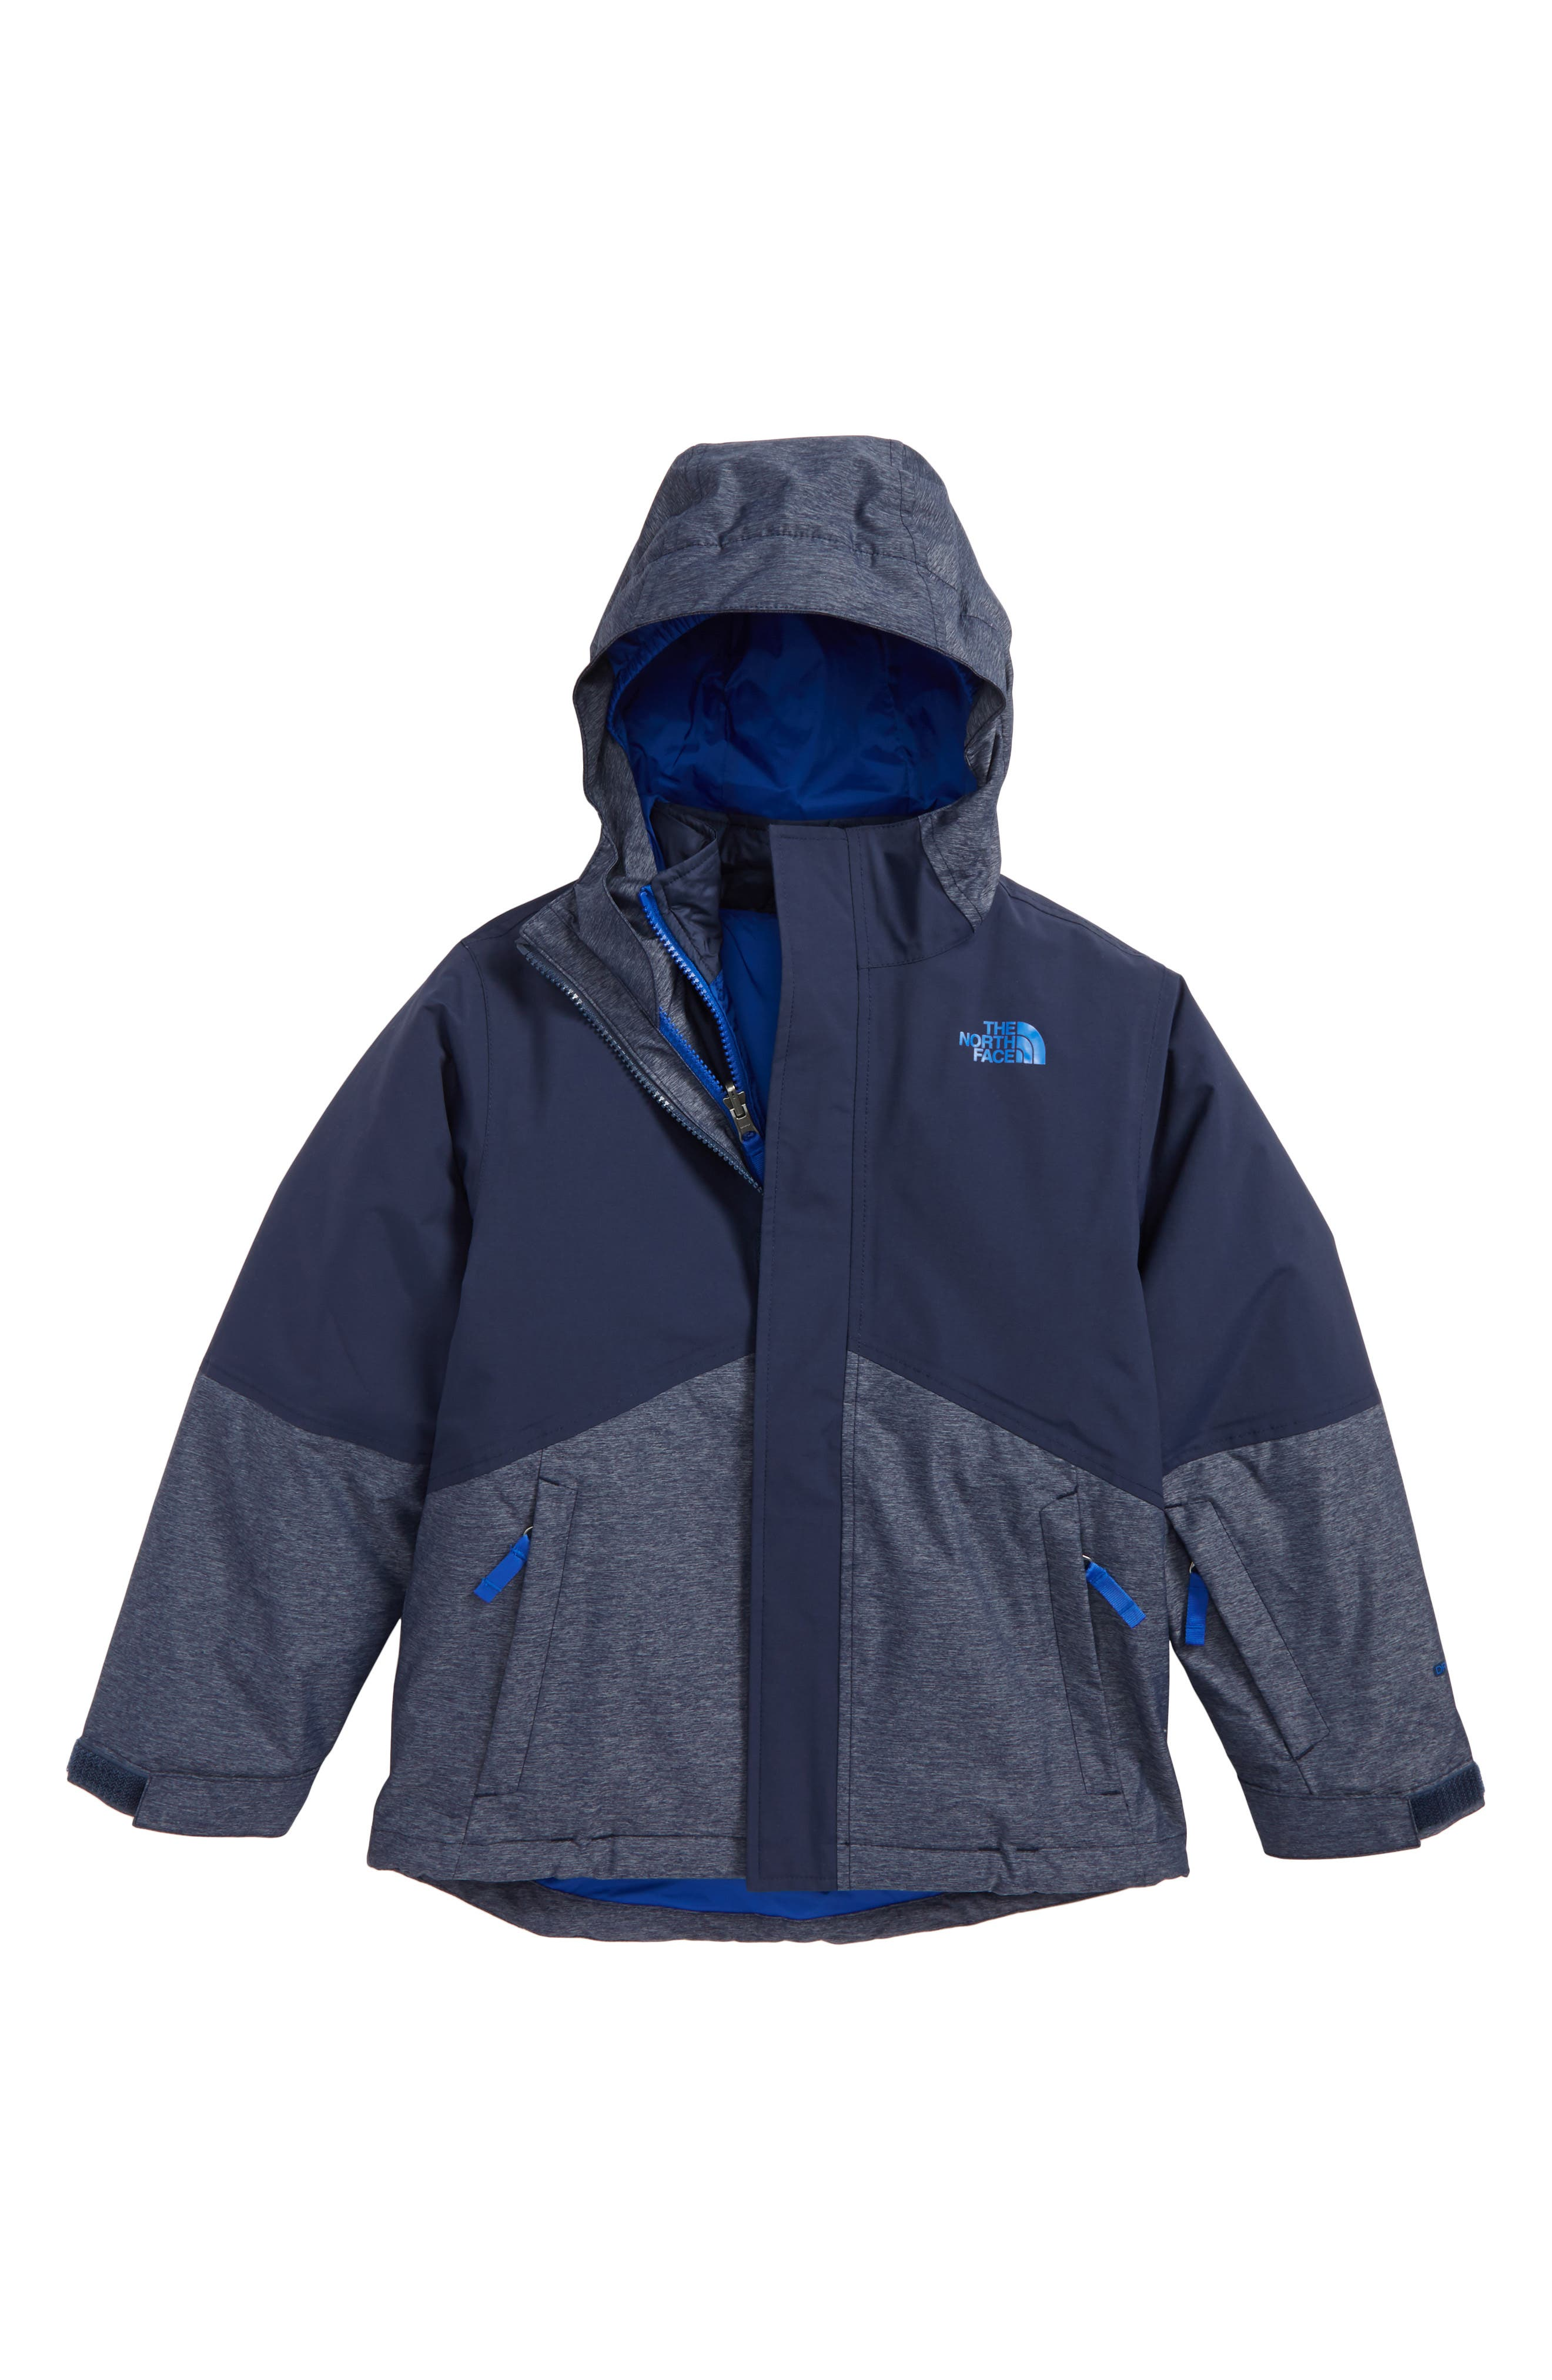 Main Image - The North Face Boundary TriClimate® 3-in-1 Jacket (Big Boys)